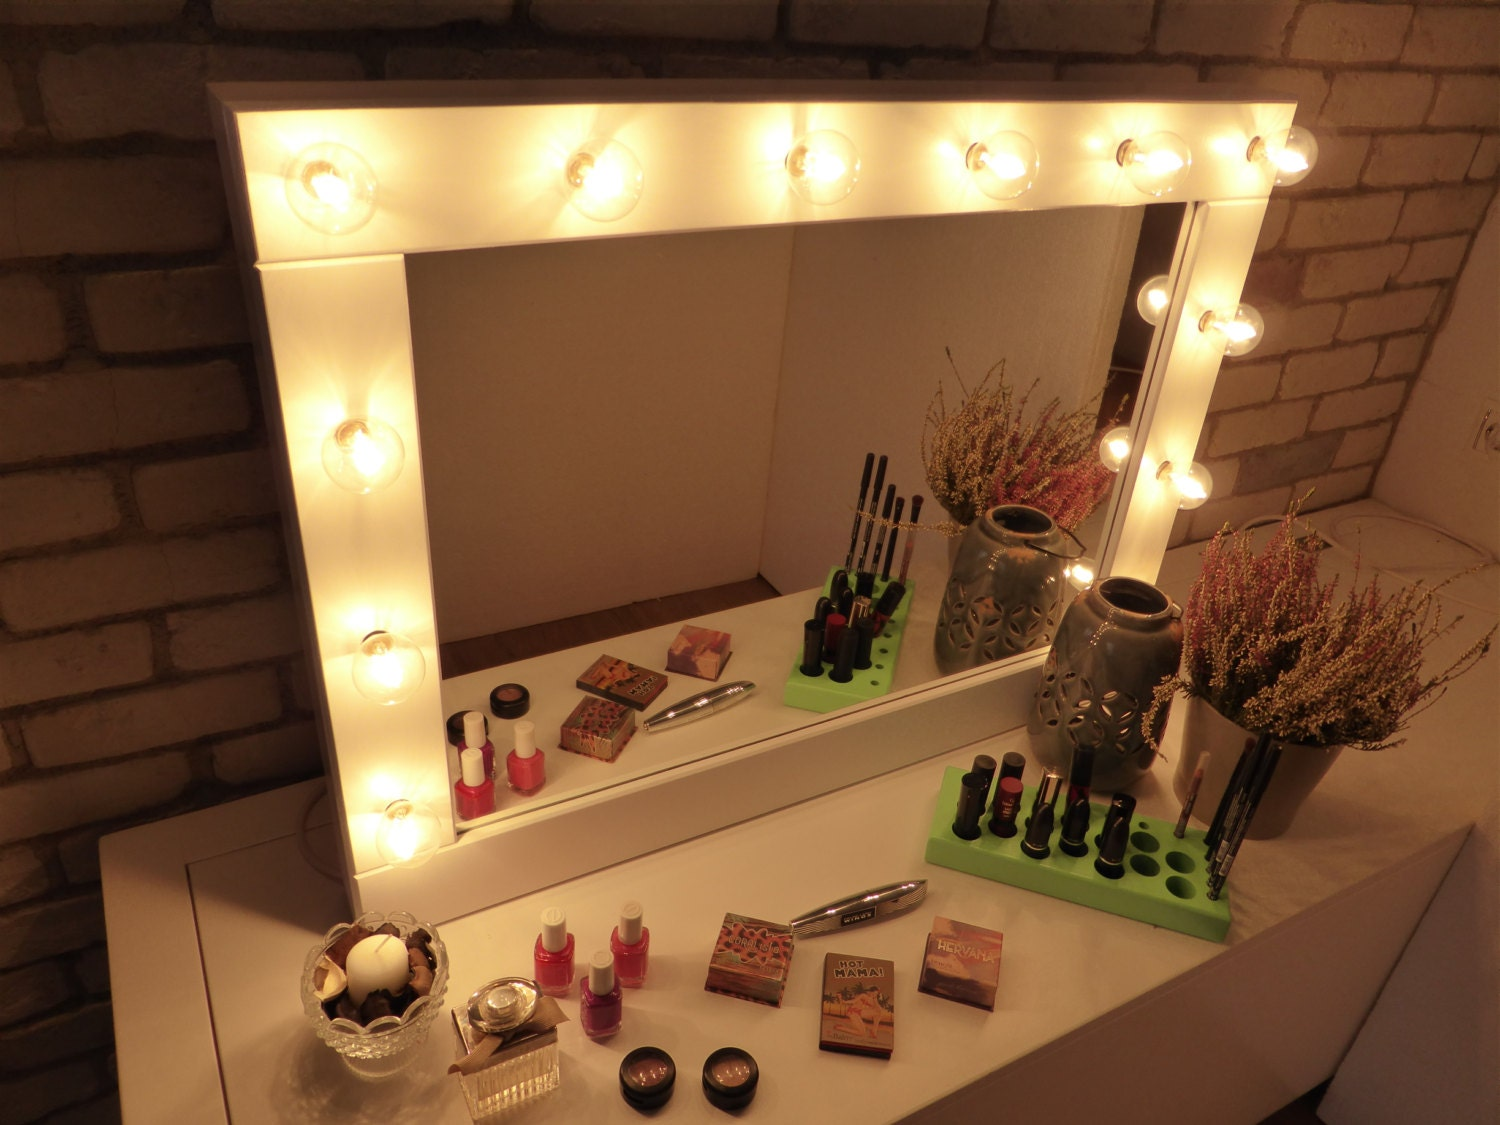 Lights For Makeup Vanity Mirror : Make up Mirror with lights Vanity mirror by CraftersCalendar